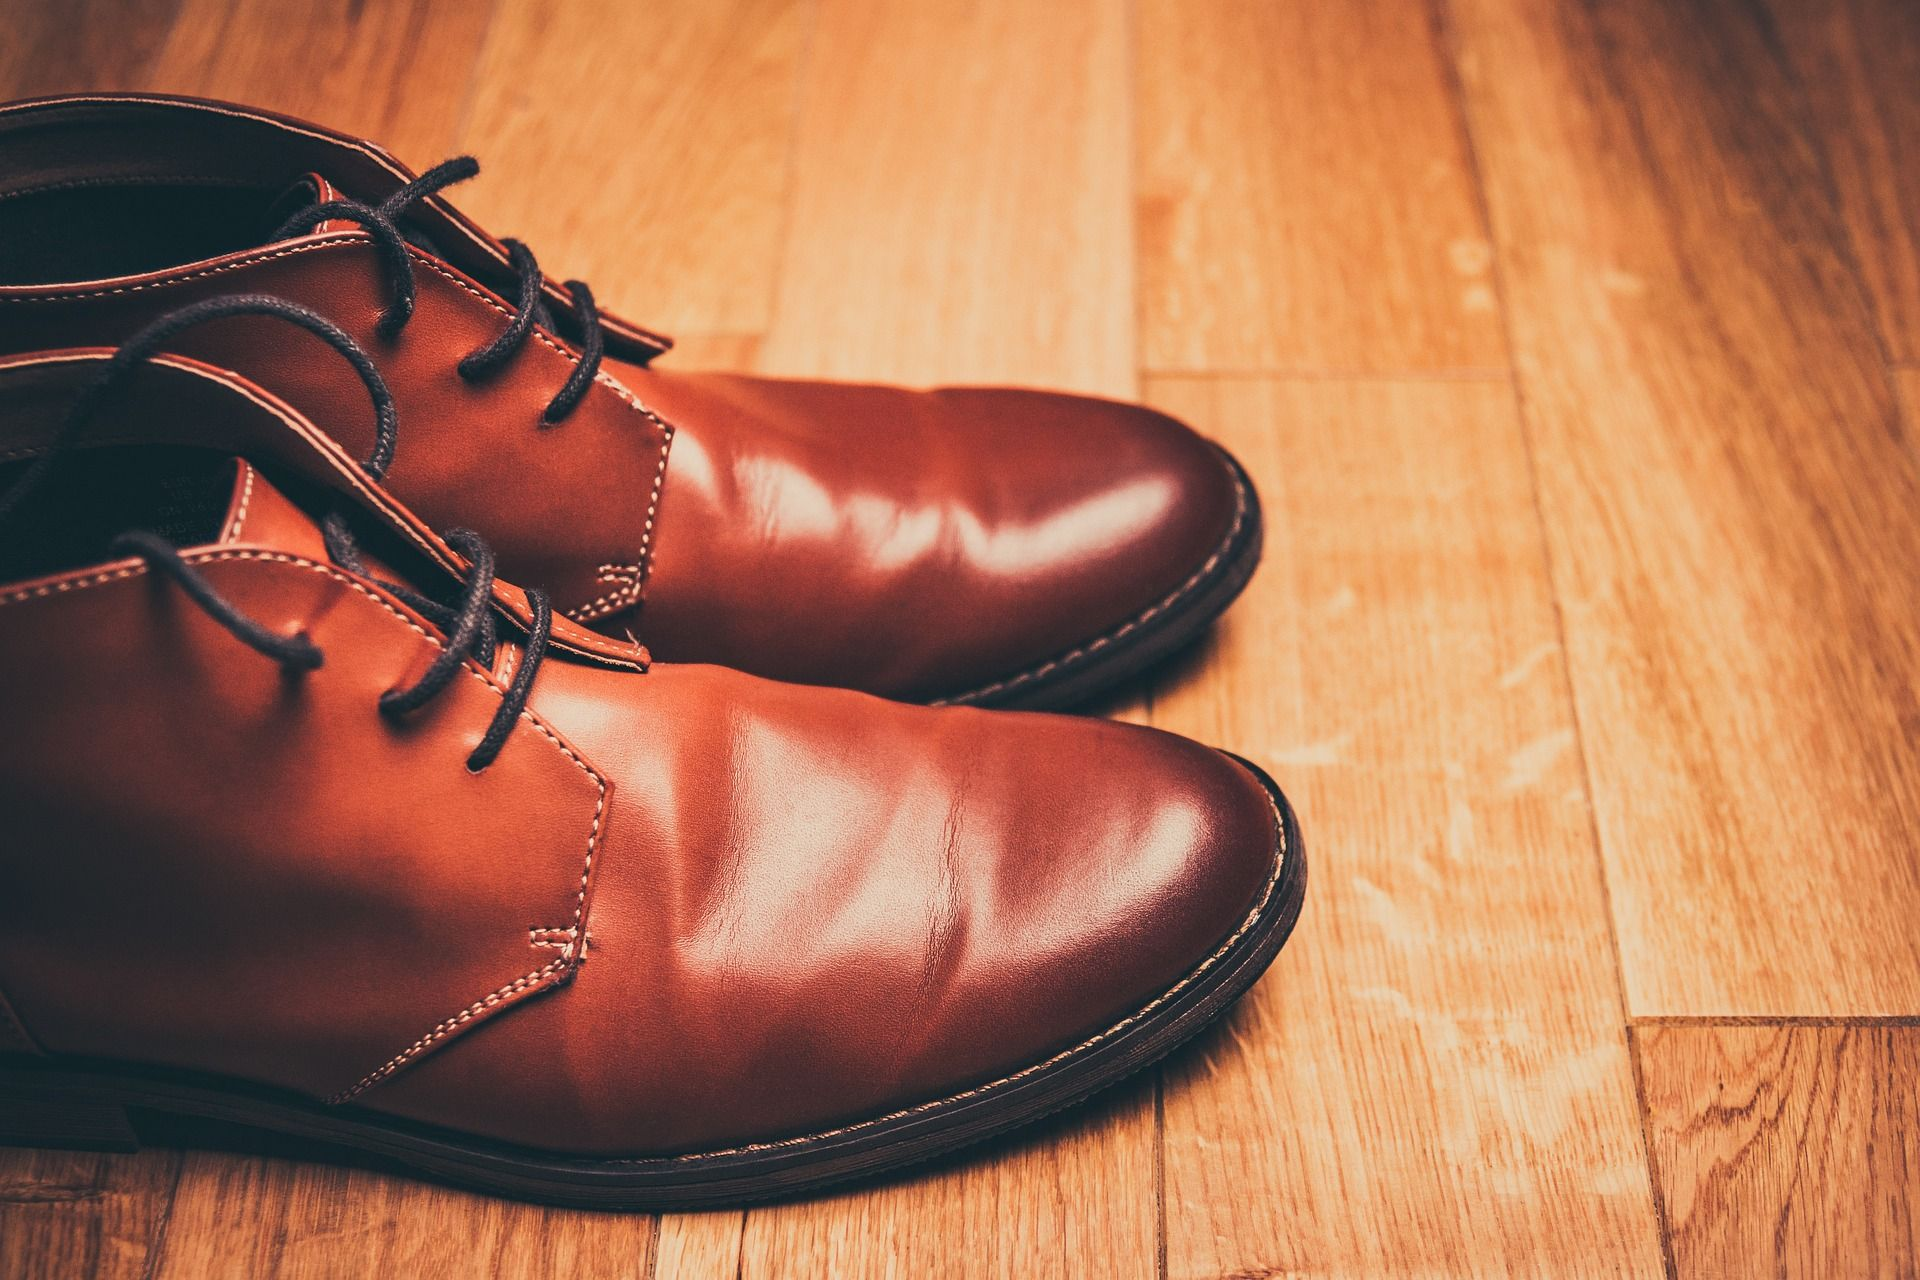 Wearing brown shoes could affect your chances in an interview